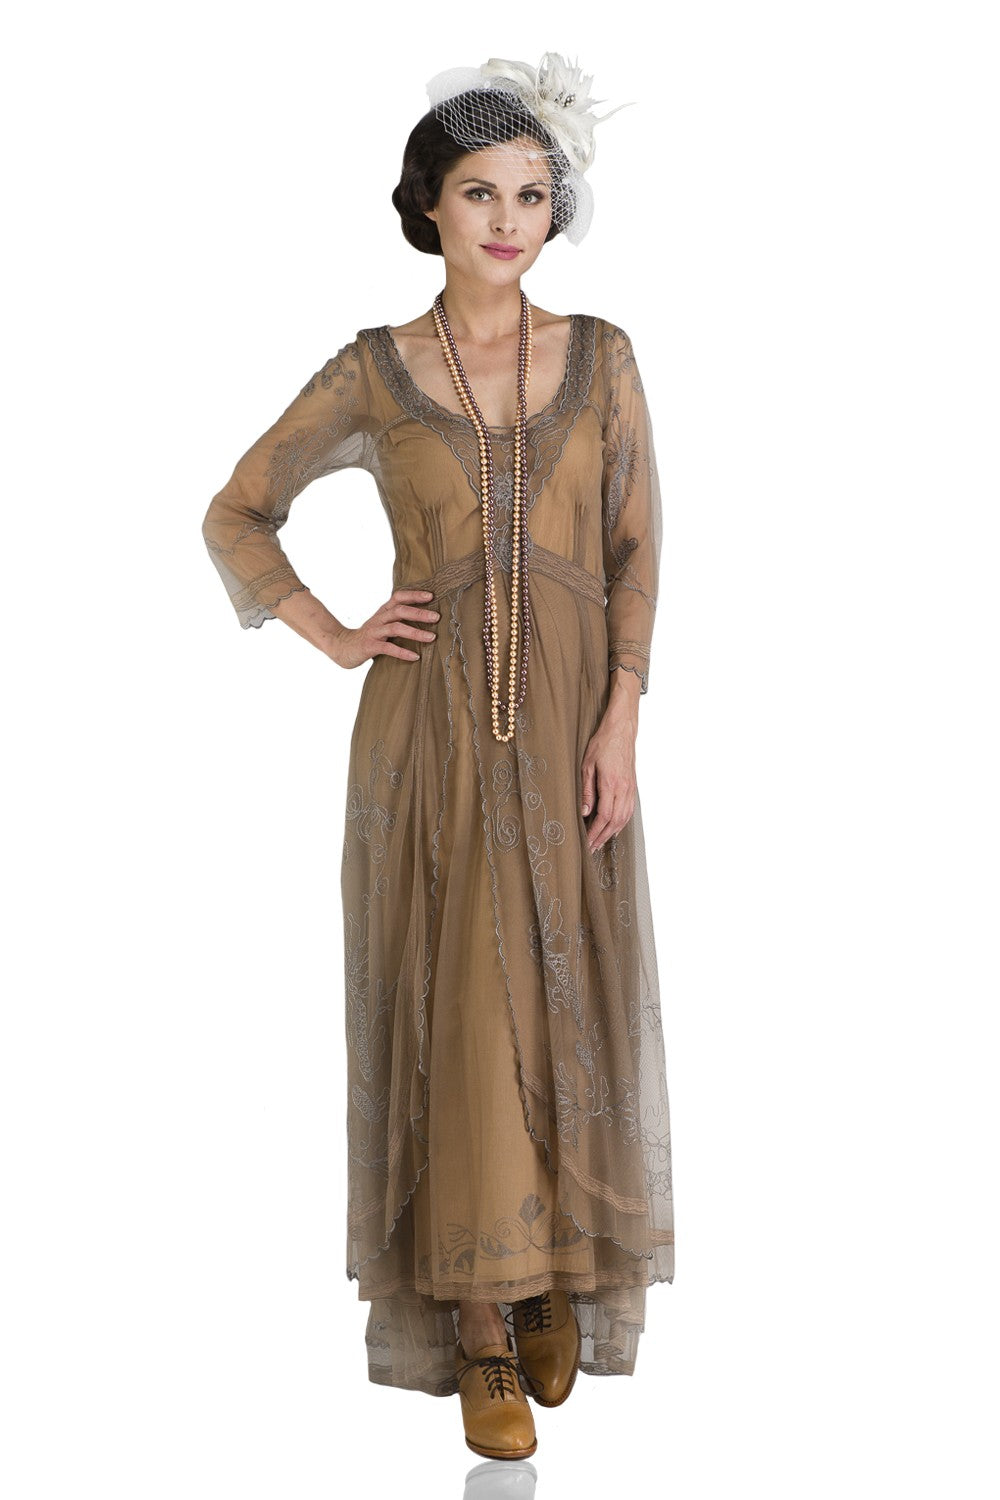 Steampunk Plus Size Clothing & Costumes Downton Abbey Tea Party Gown in Antique Silver by Nataya $250.00 AT vintagedancer.com